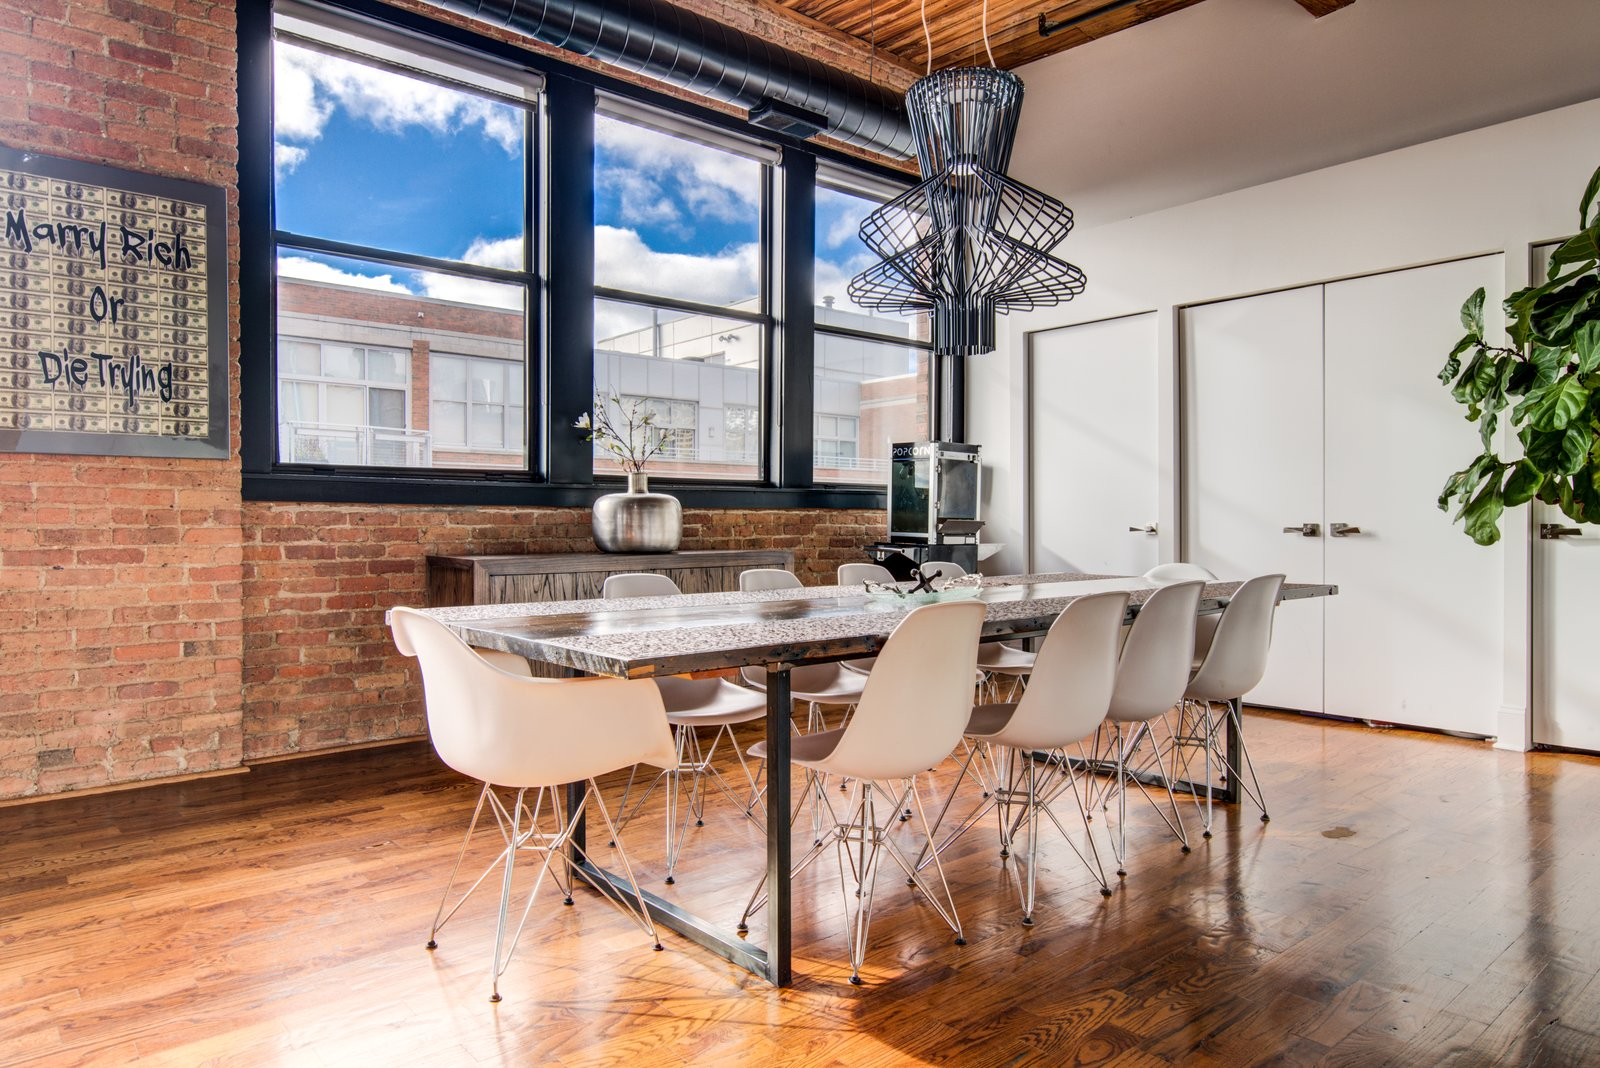 Dining Room, Medium Hardwood Floor, Track Lighting, Chair, Table, and Ceiling Lighting  Penthouse That Starred on NBC's 'Chicago Fire' Asks $1.775M